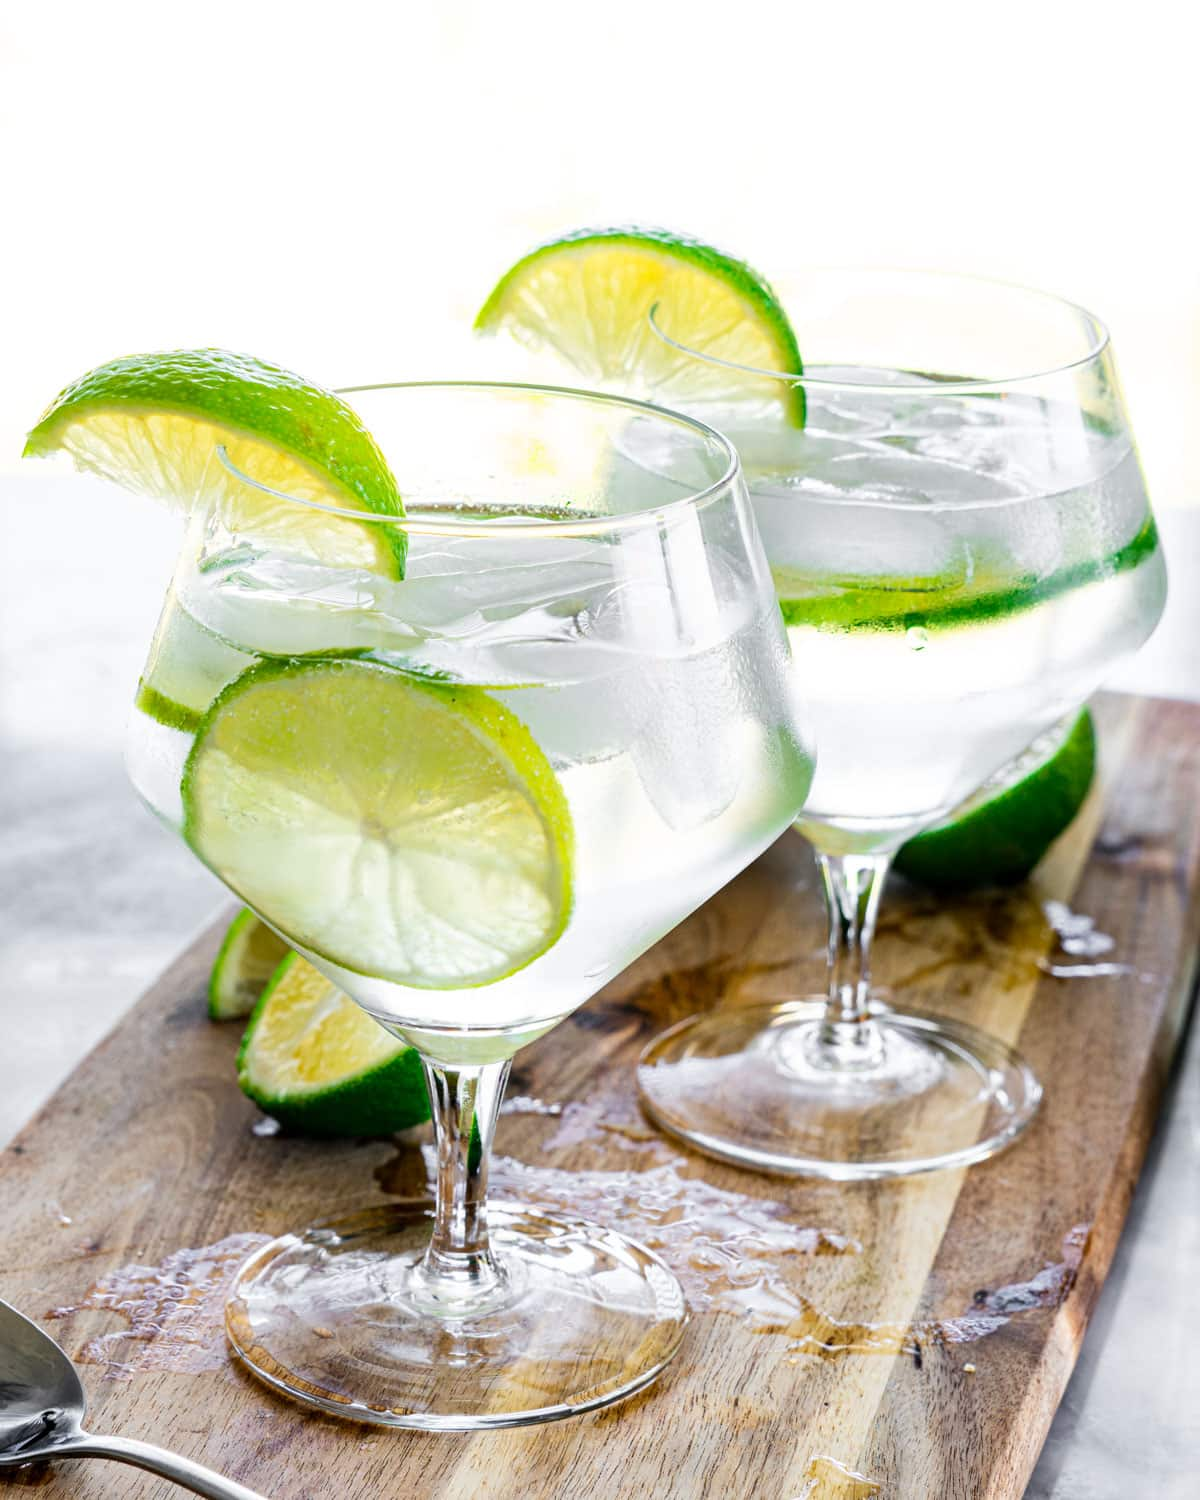 two gin and tonic glasses garnished with lime wedges on a cutting board